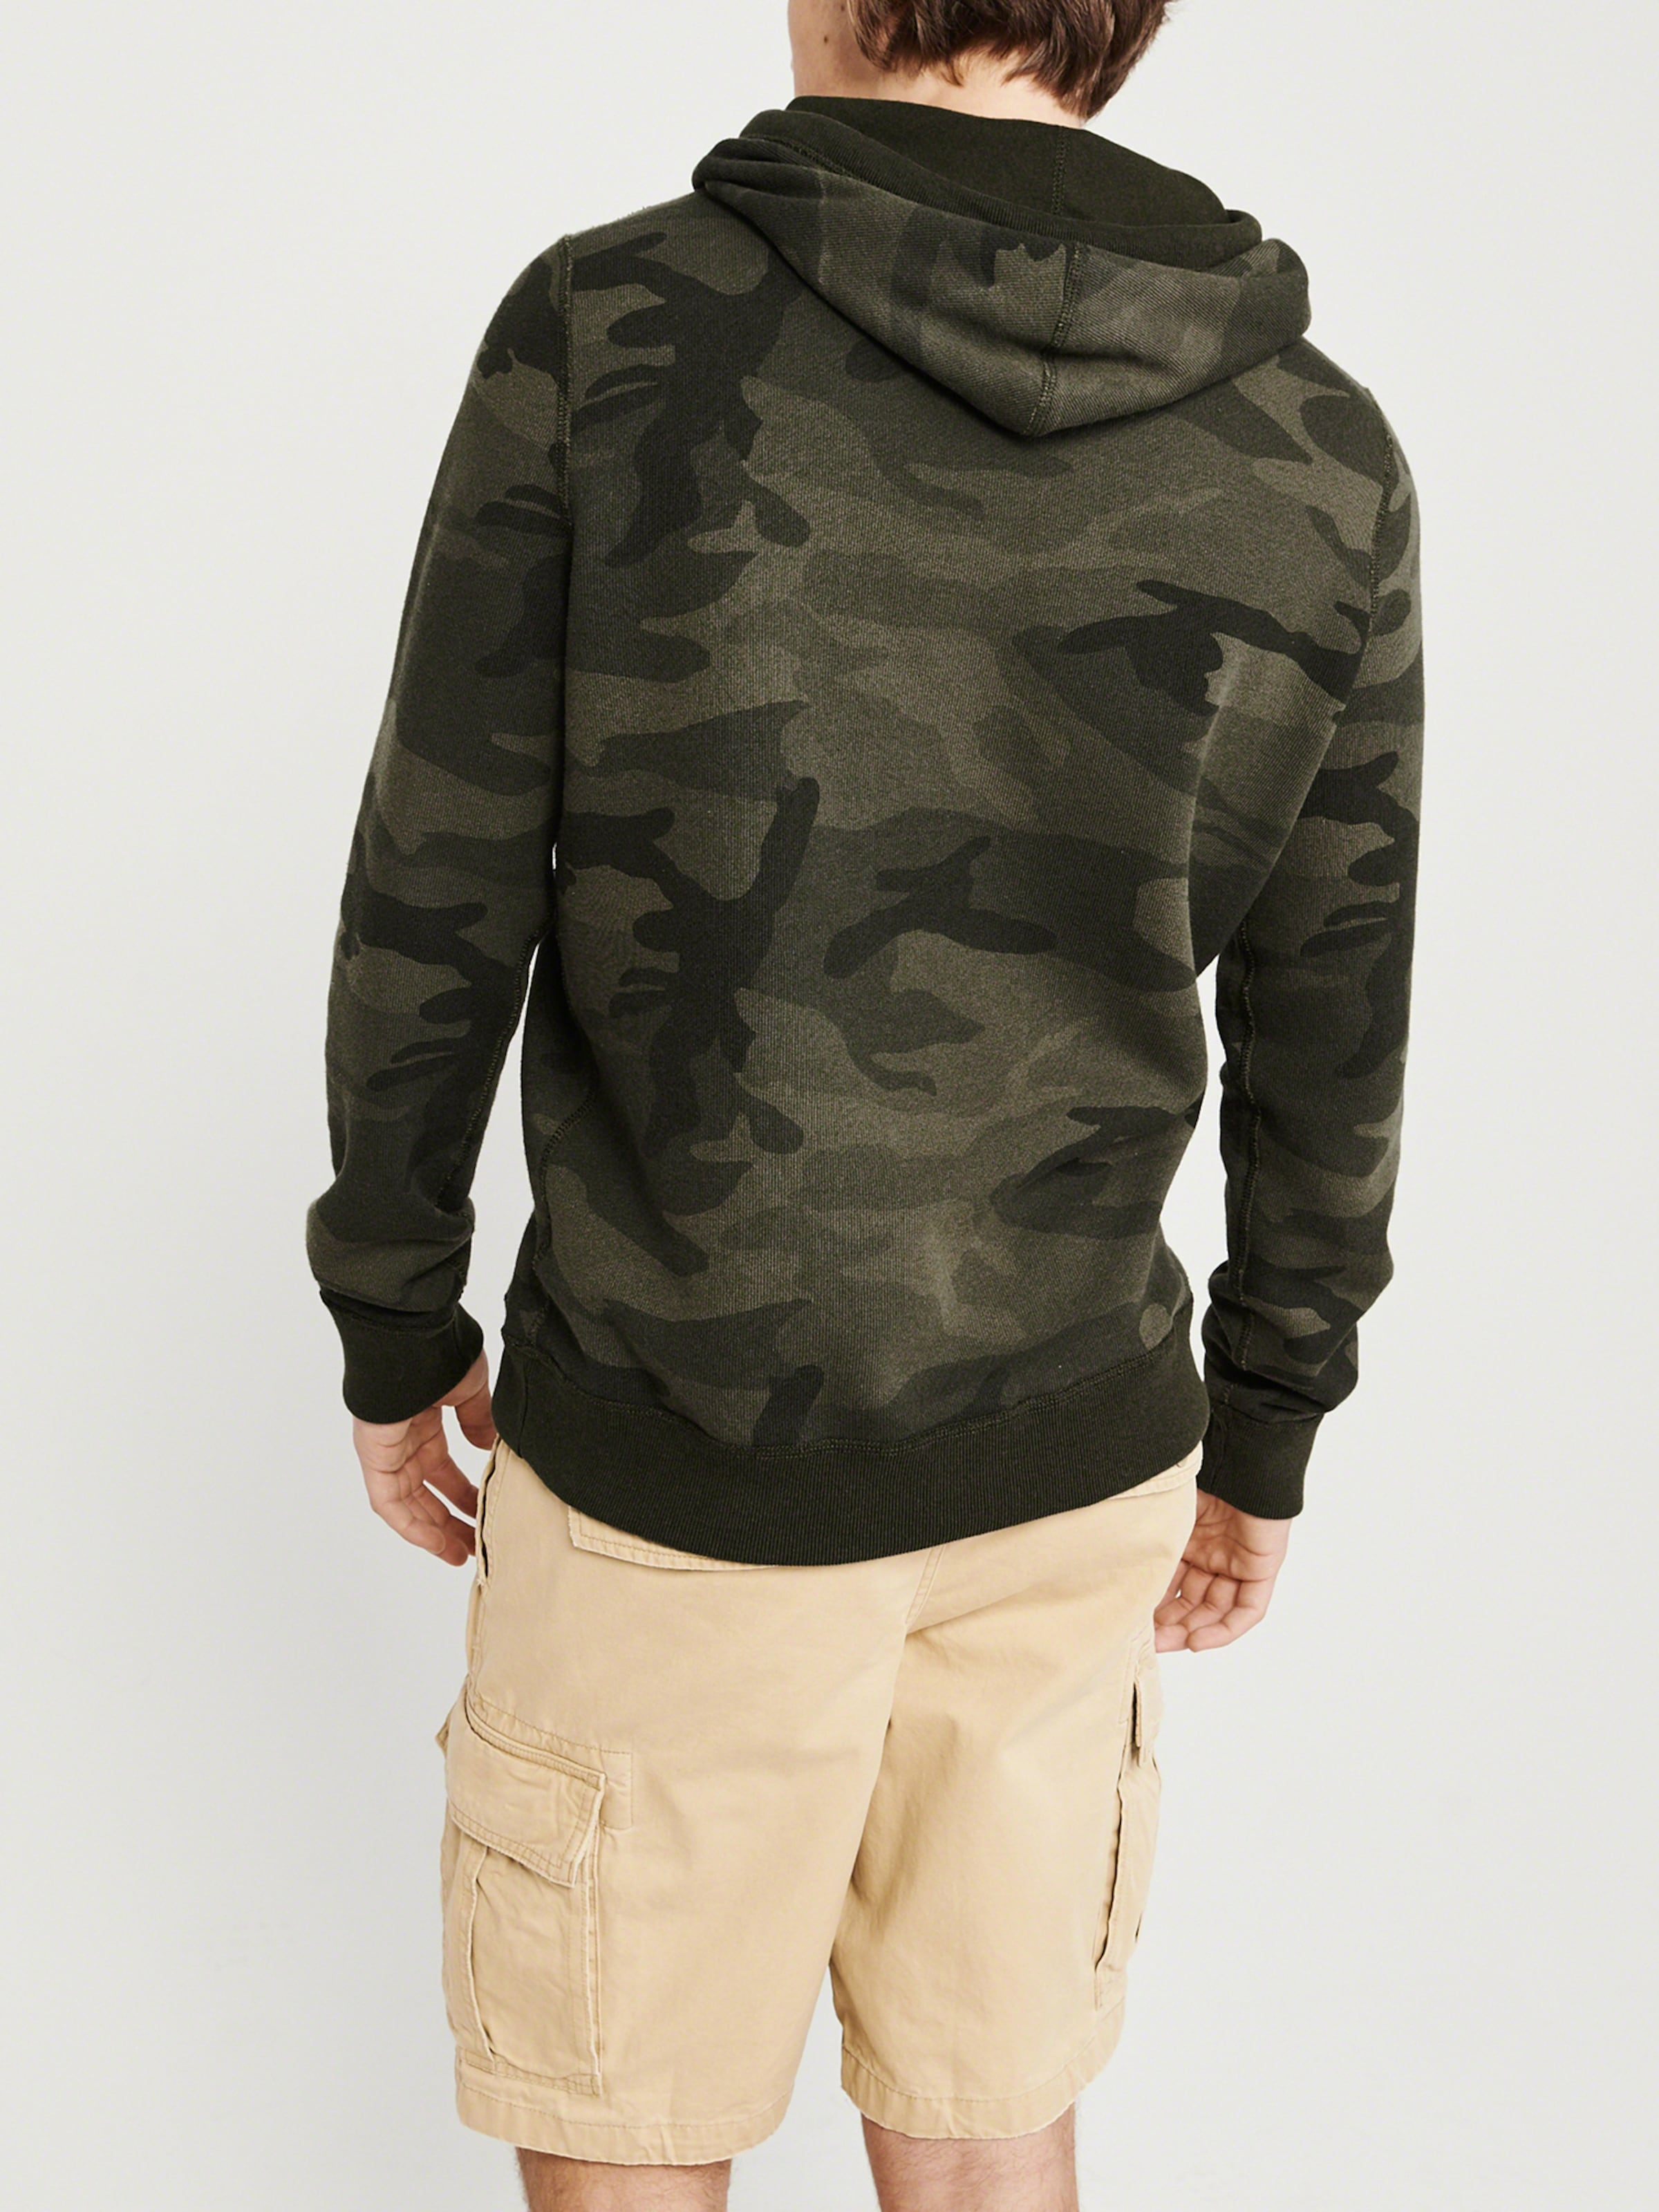 Abercrombieamp; In Khaki 'icon Sweatshirt Fitch Popover' sQrdCth